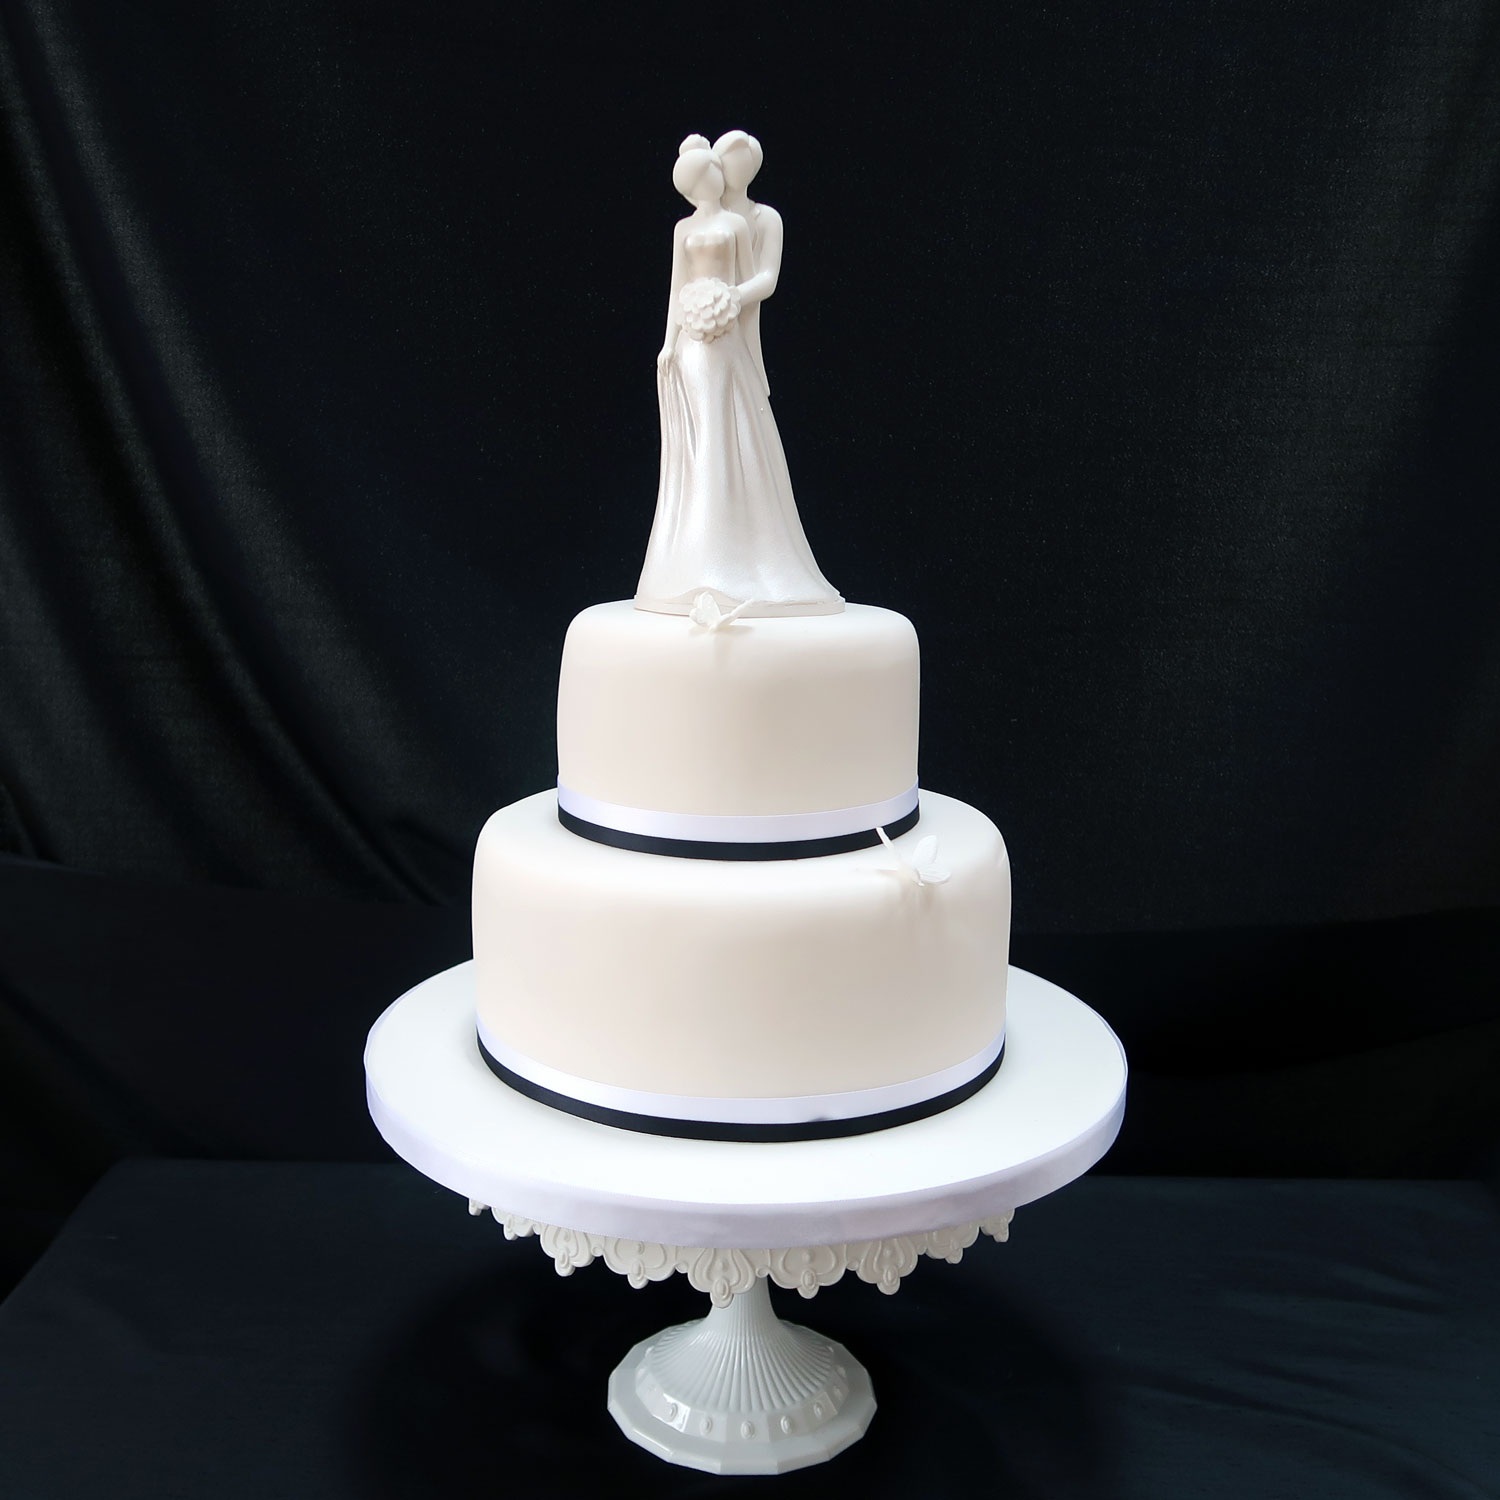 Sugarcraft Bride and Groom Cake Topper